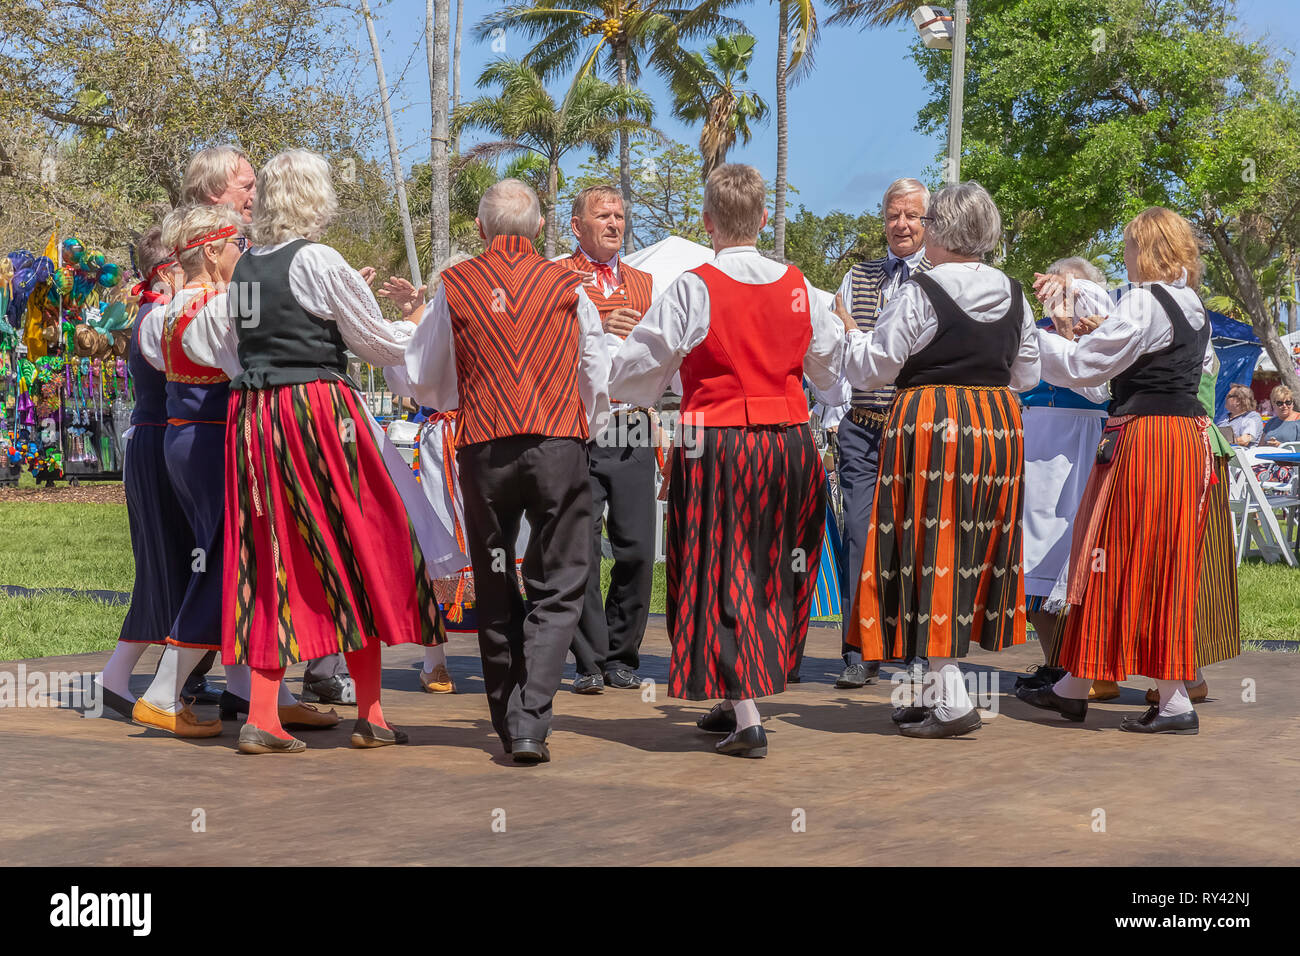 Lake Worth, Florida, USA March 3, 2019,​ Midnight Sun Festival Celebrating Finnish Culture. Mature couples dancing together in a tight circle. - Stock Image